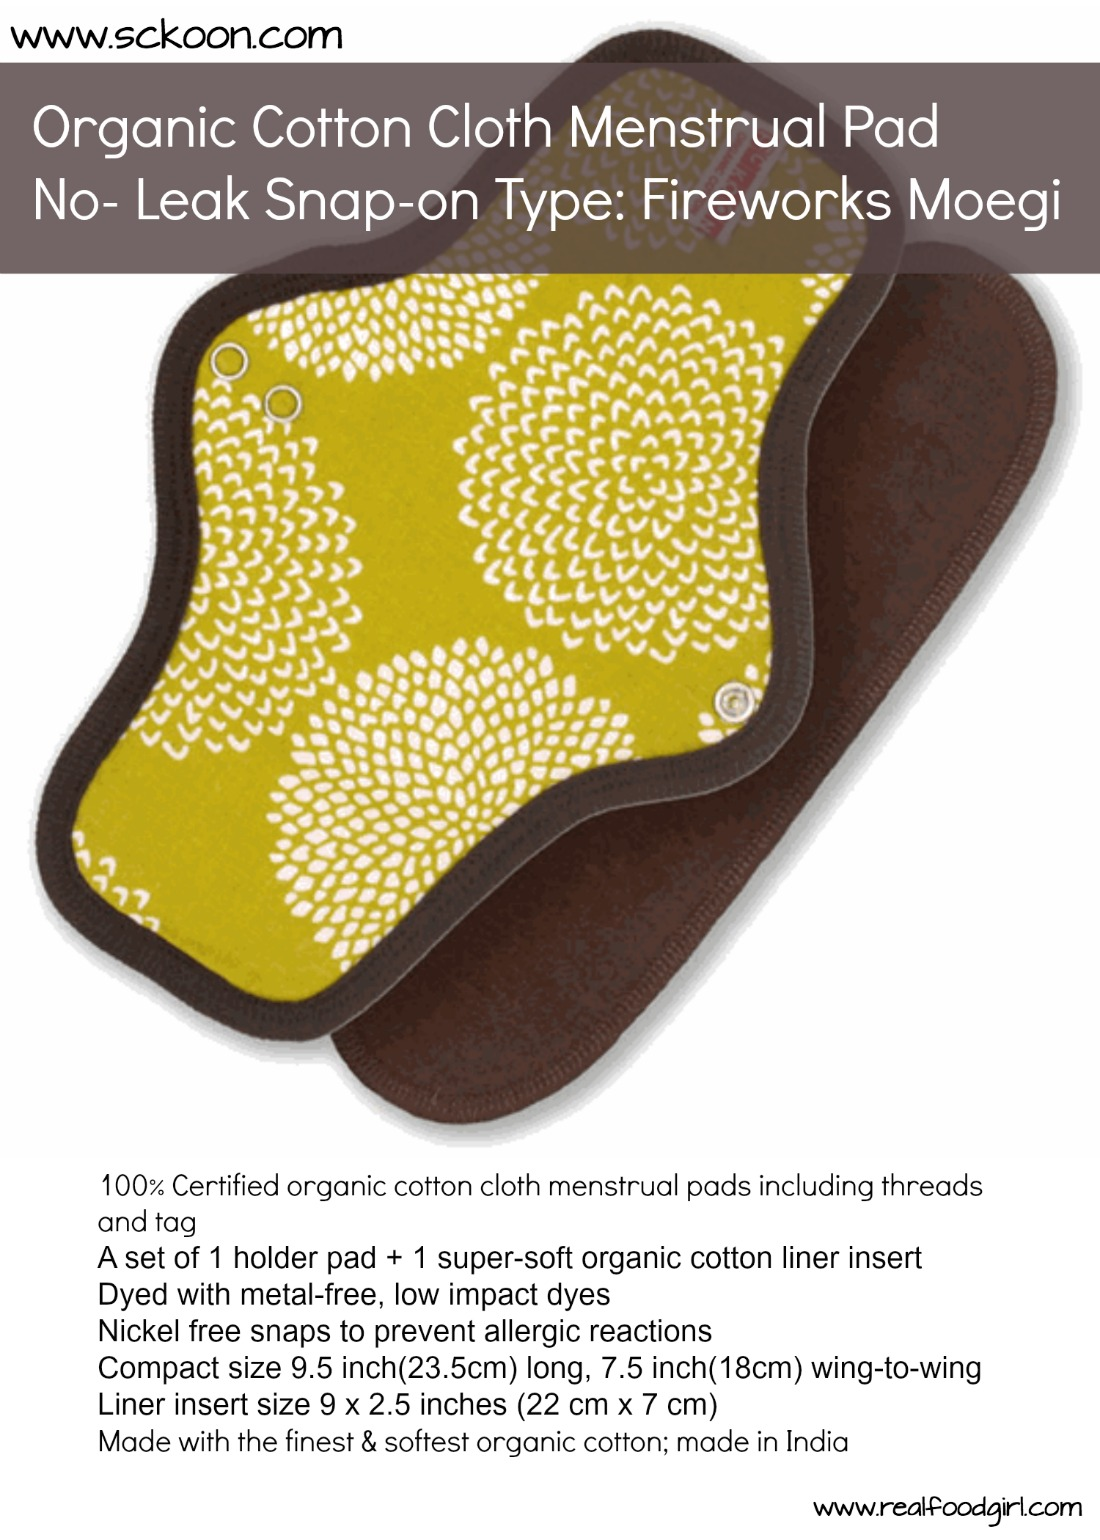 Sckoon 100% Organic Cotton cloth pad Review by Real Food Girl Unmodified